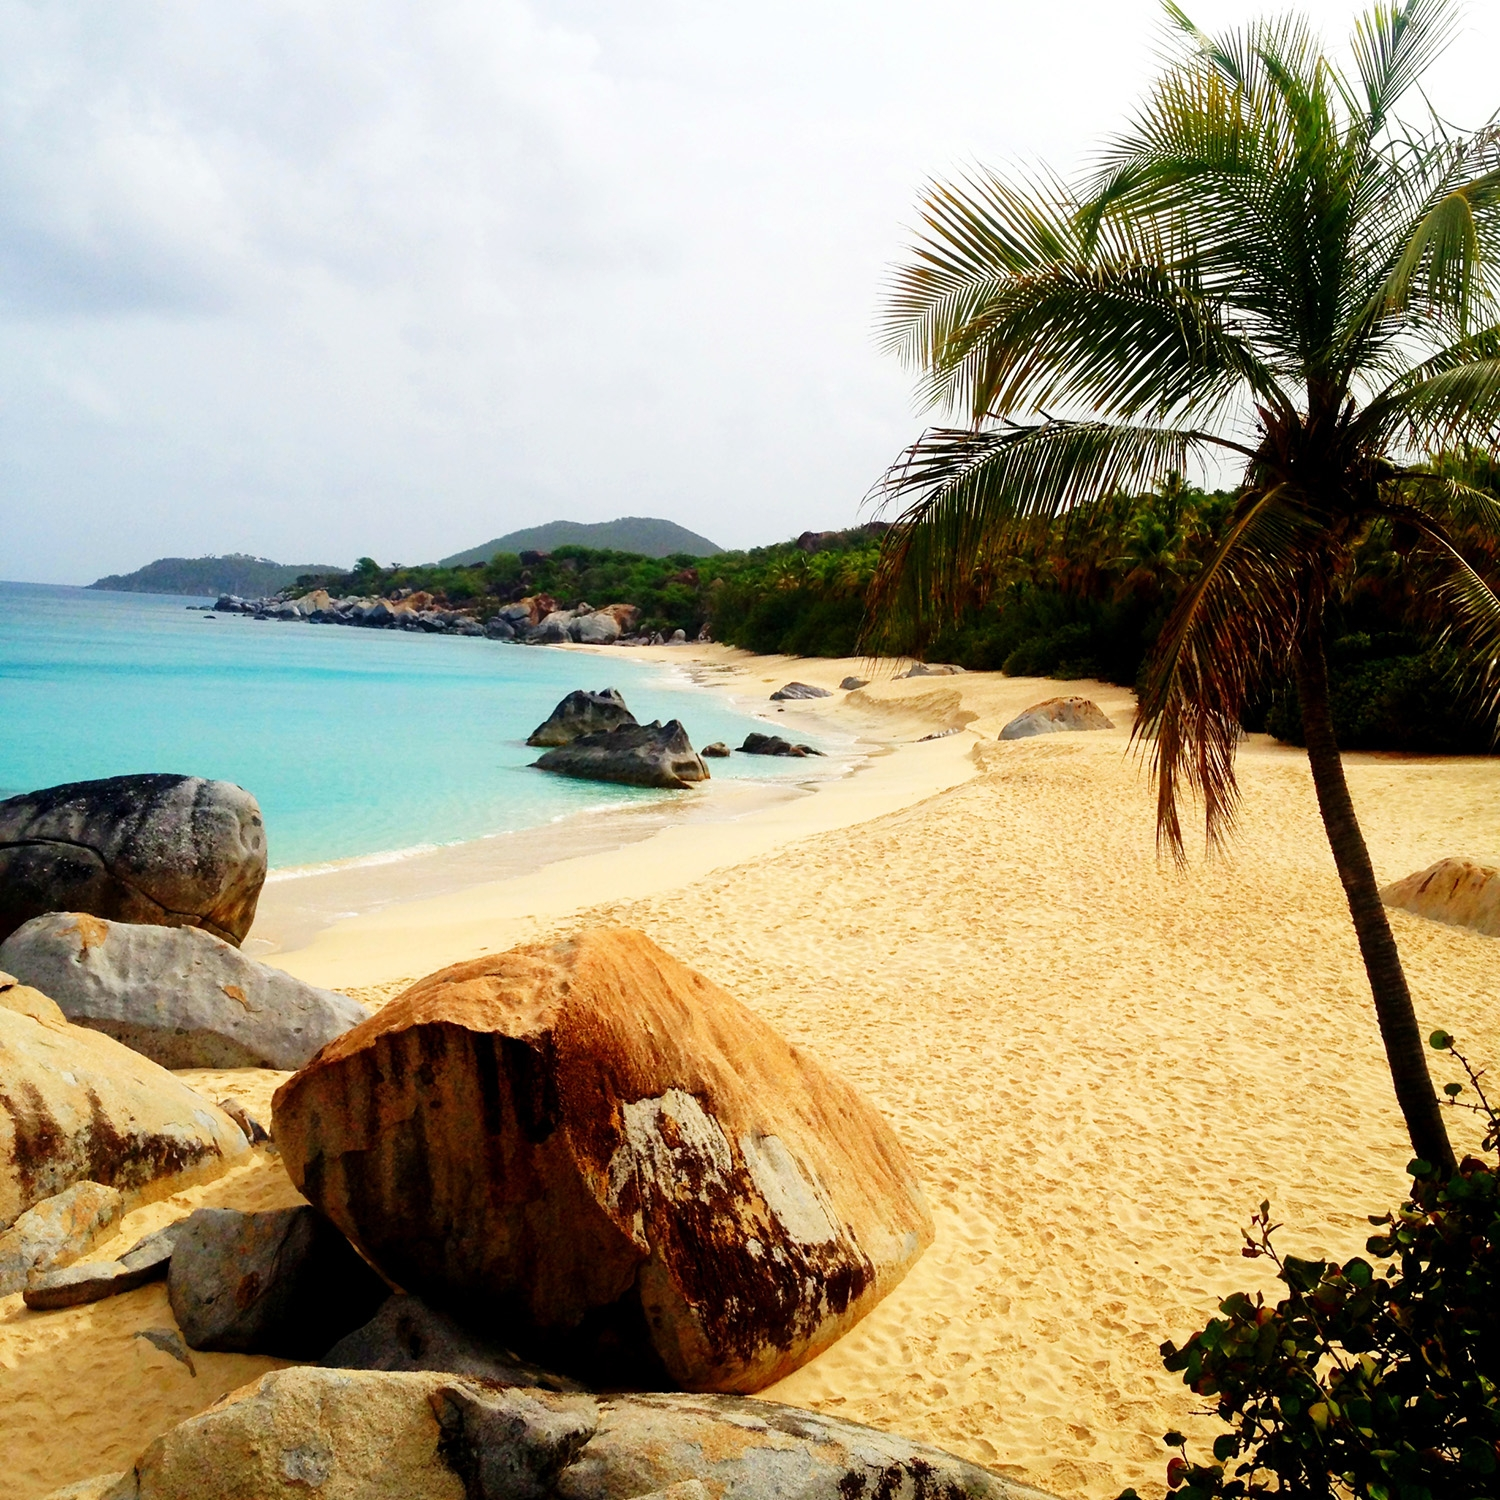 The sand, rocks, trees and sea water that make up the Virgin Gorda coast